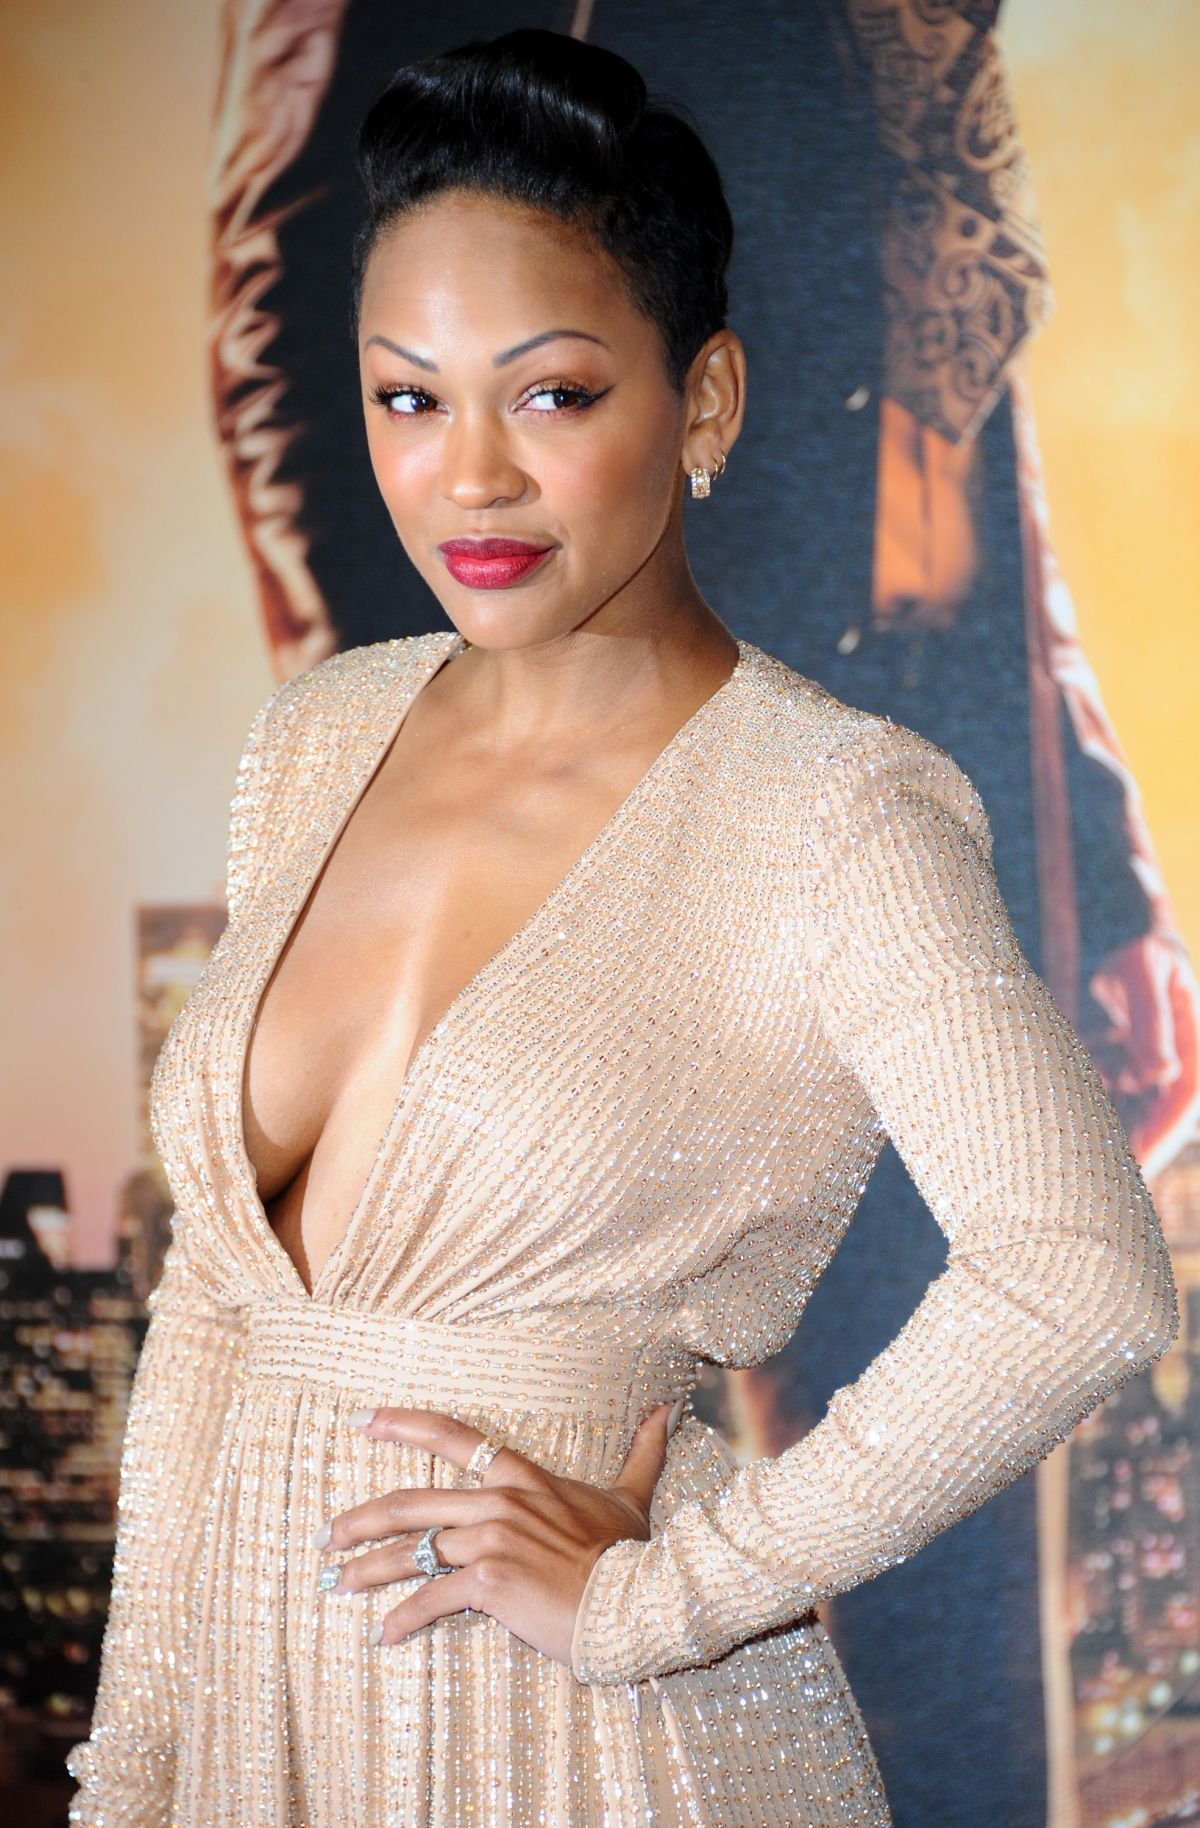 meagan-good-ar-anchorman-2-the-legend-continues-premiere-in-london_2 Laz Alonso Wife 2014